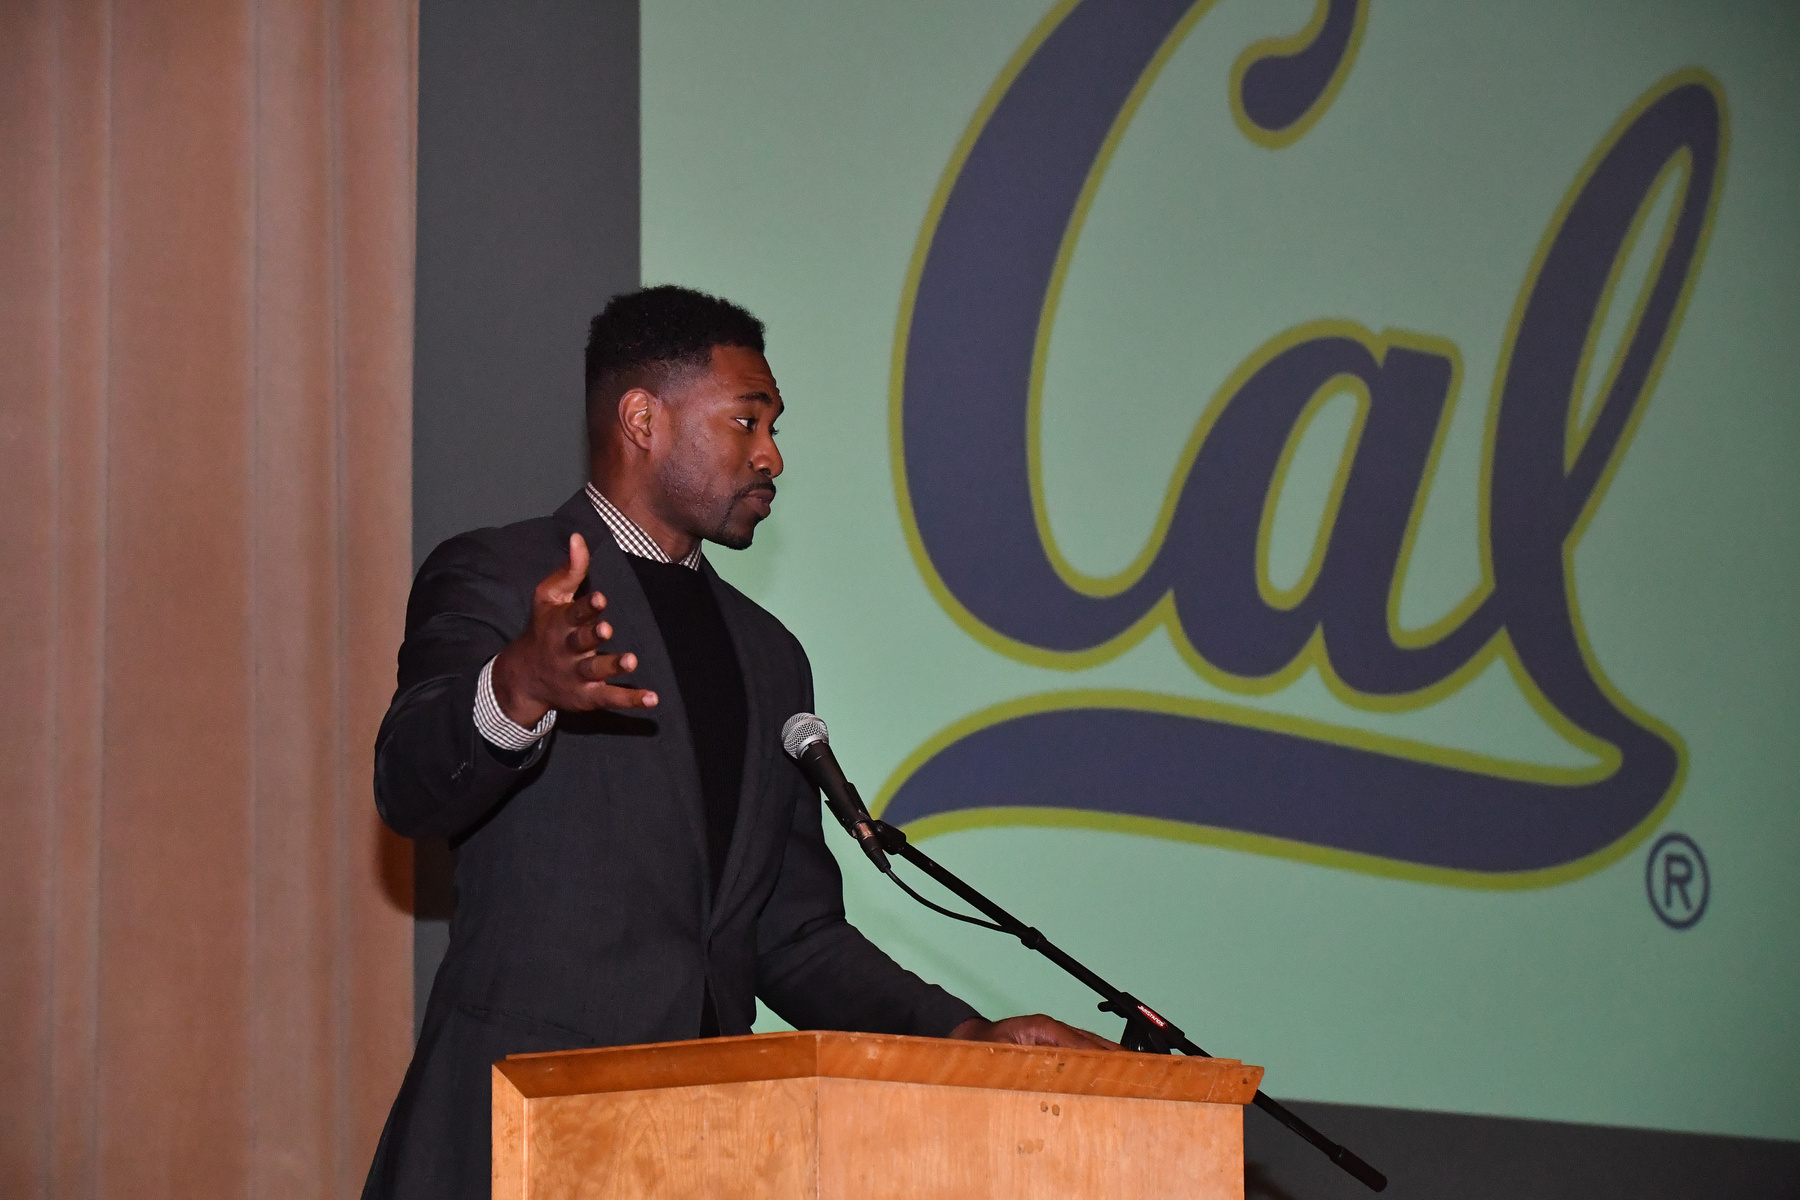 2018 Cal Hall of Fame ceremony _20181026_210324_MarcusE-(ZF-0861-35620-1-175).jpg